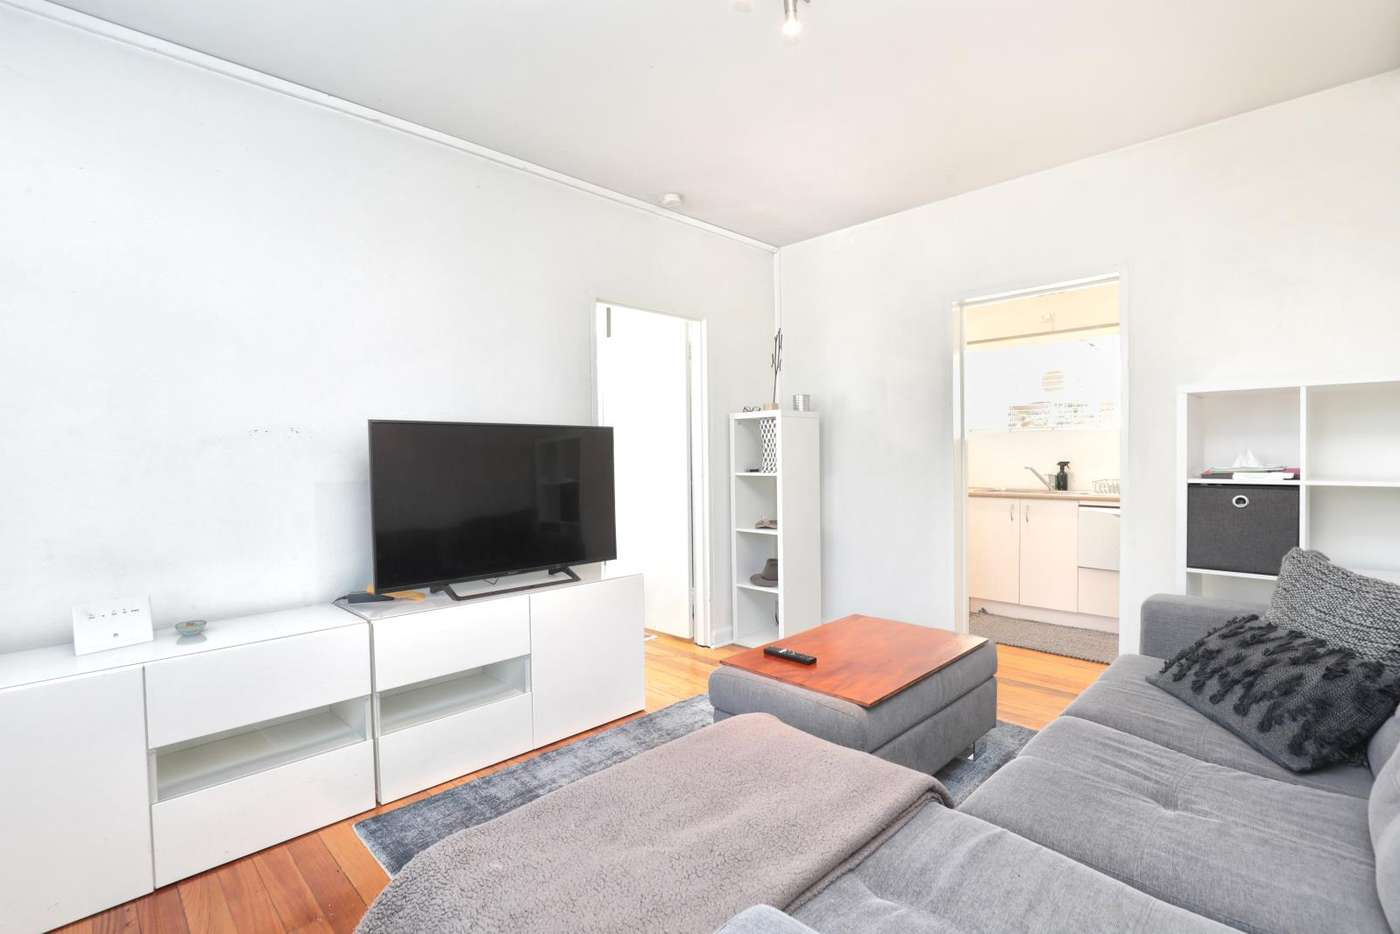 Fifth view of Homely unit listing, 34/5-9 Fulton Street, St Kilda East VIC 3183